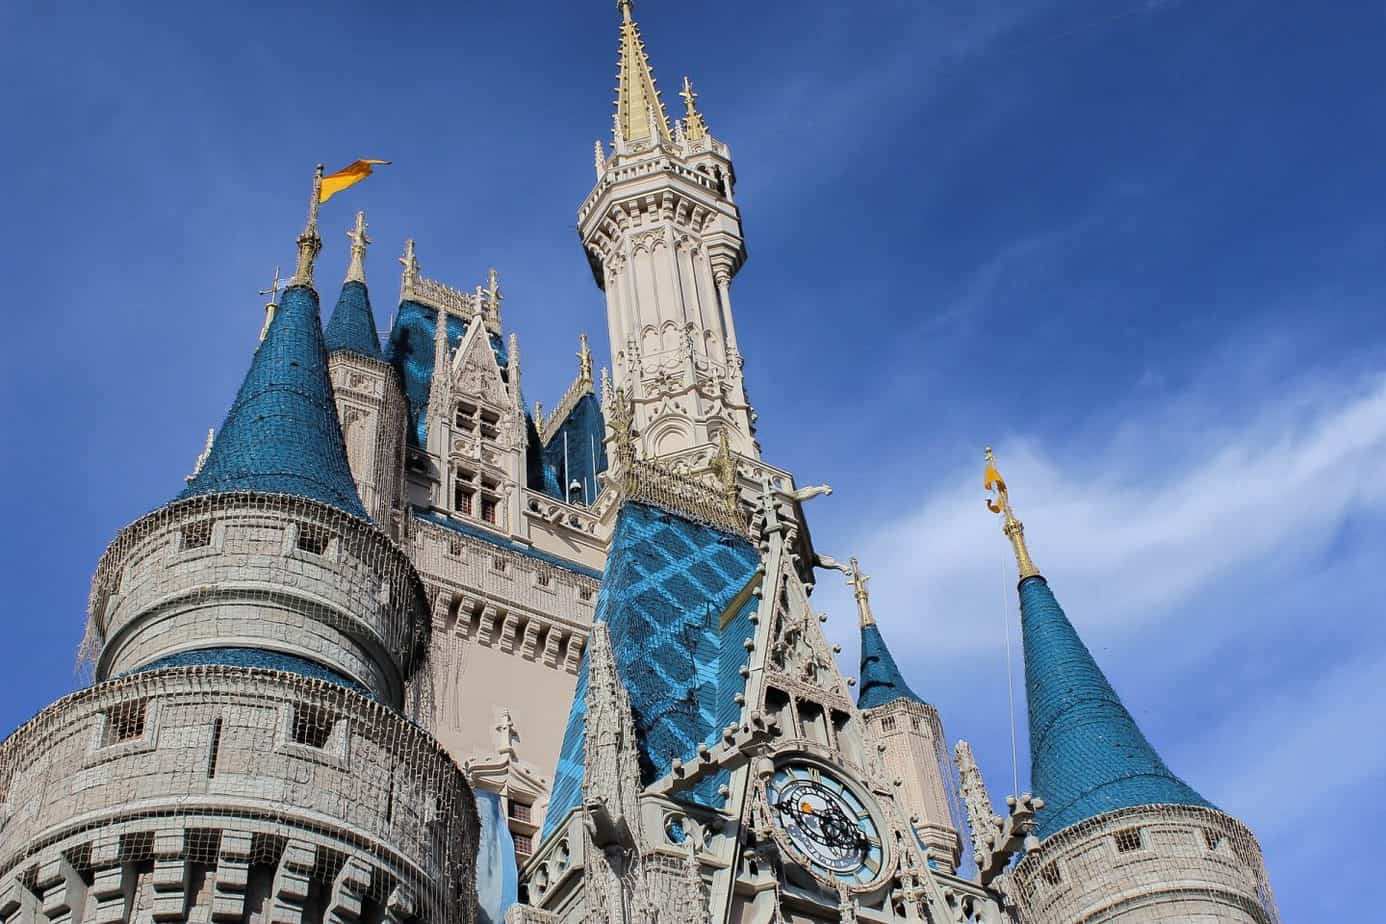 Close up of the Castle at Walt Disney world